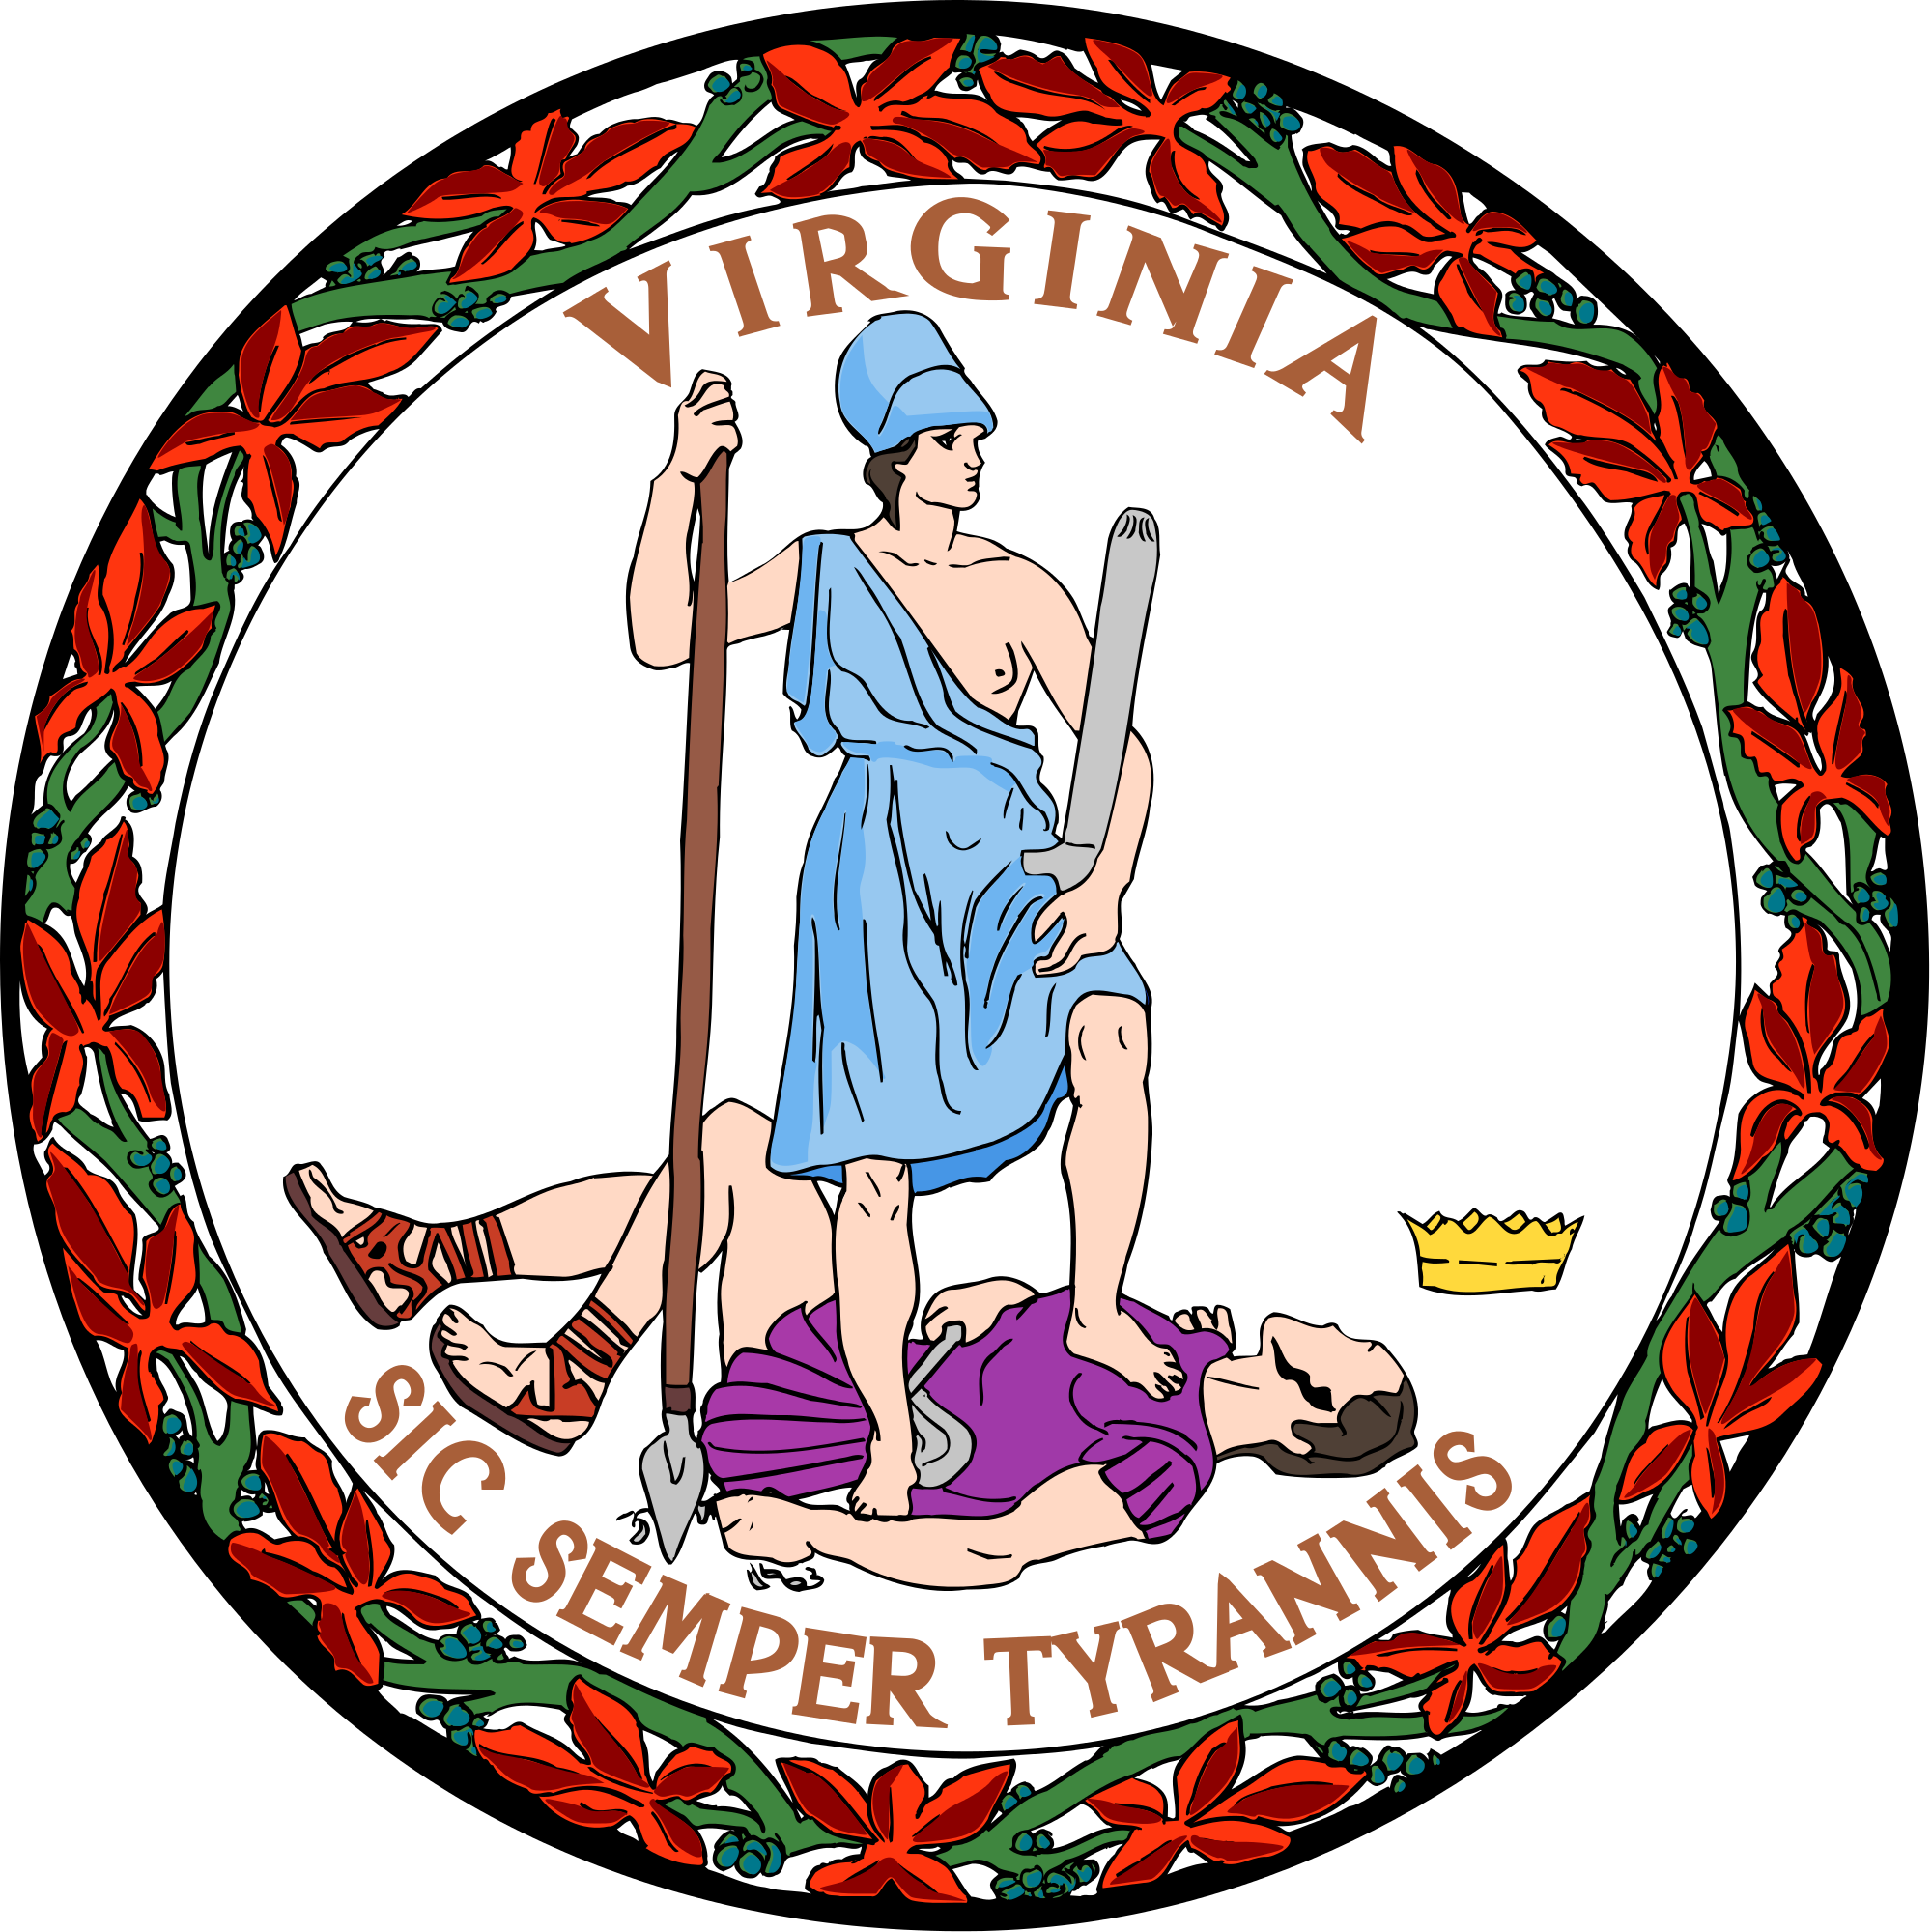 Virginia state seal clipart.